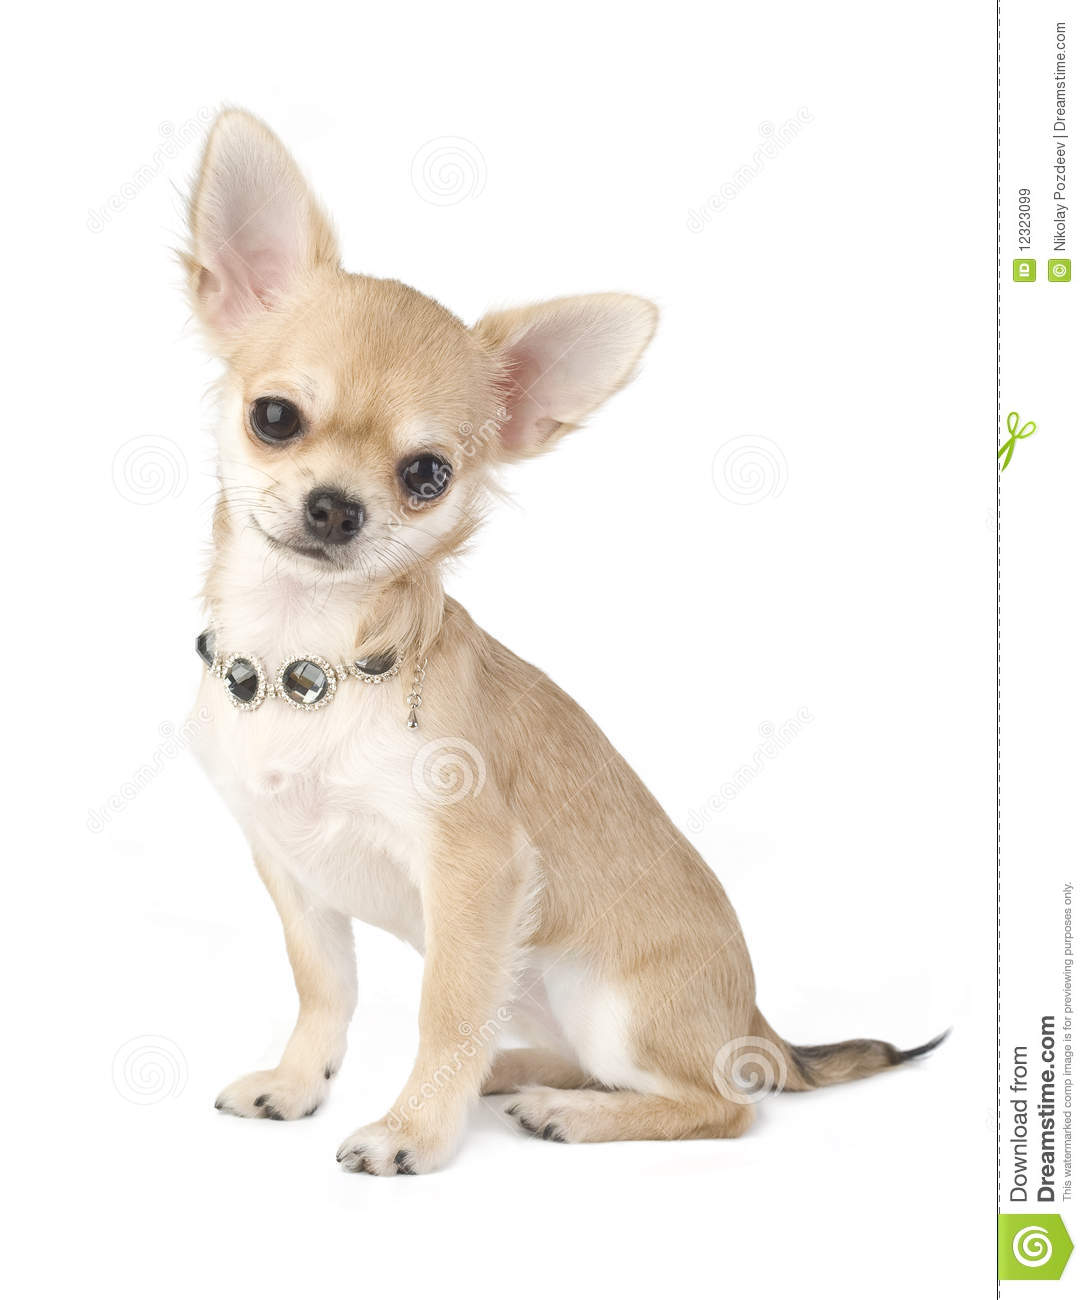 chihuahua dog clipart - photo #46